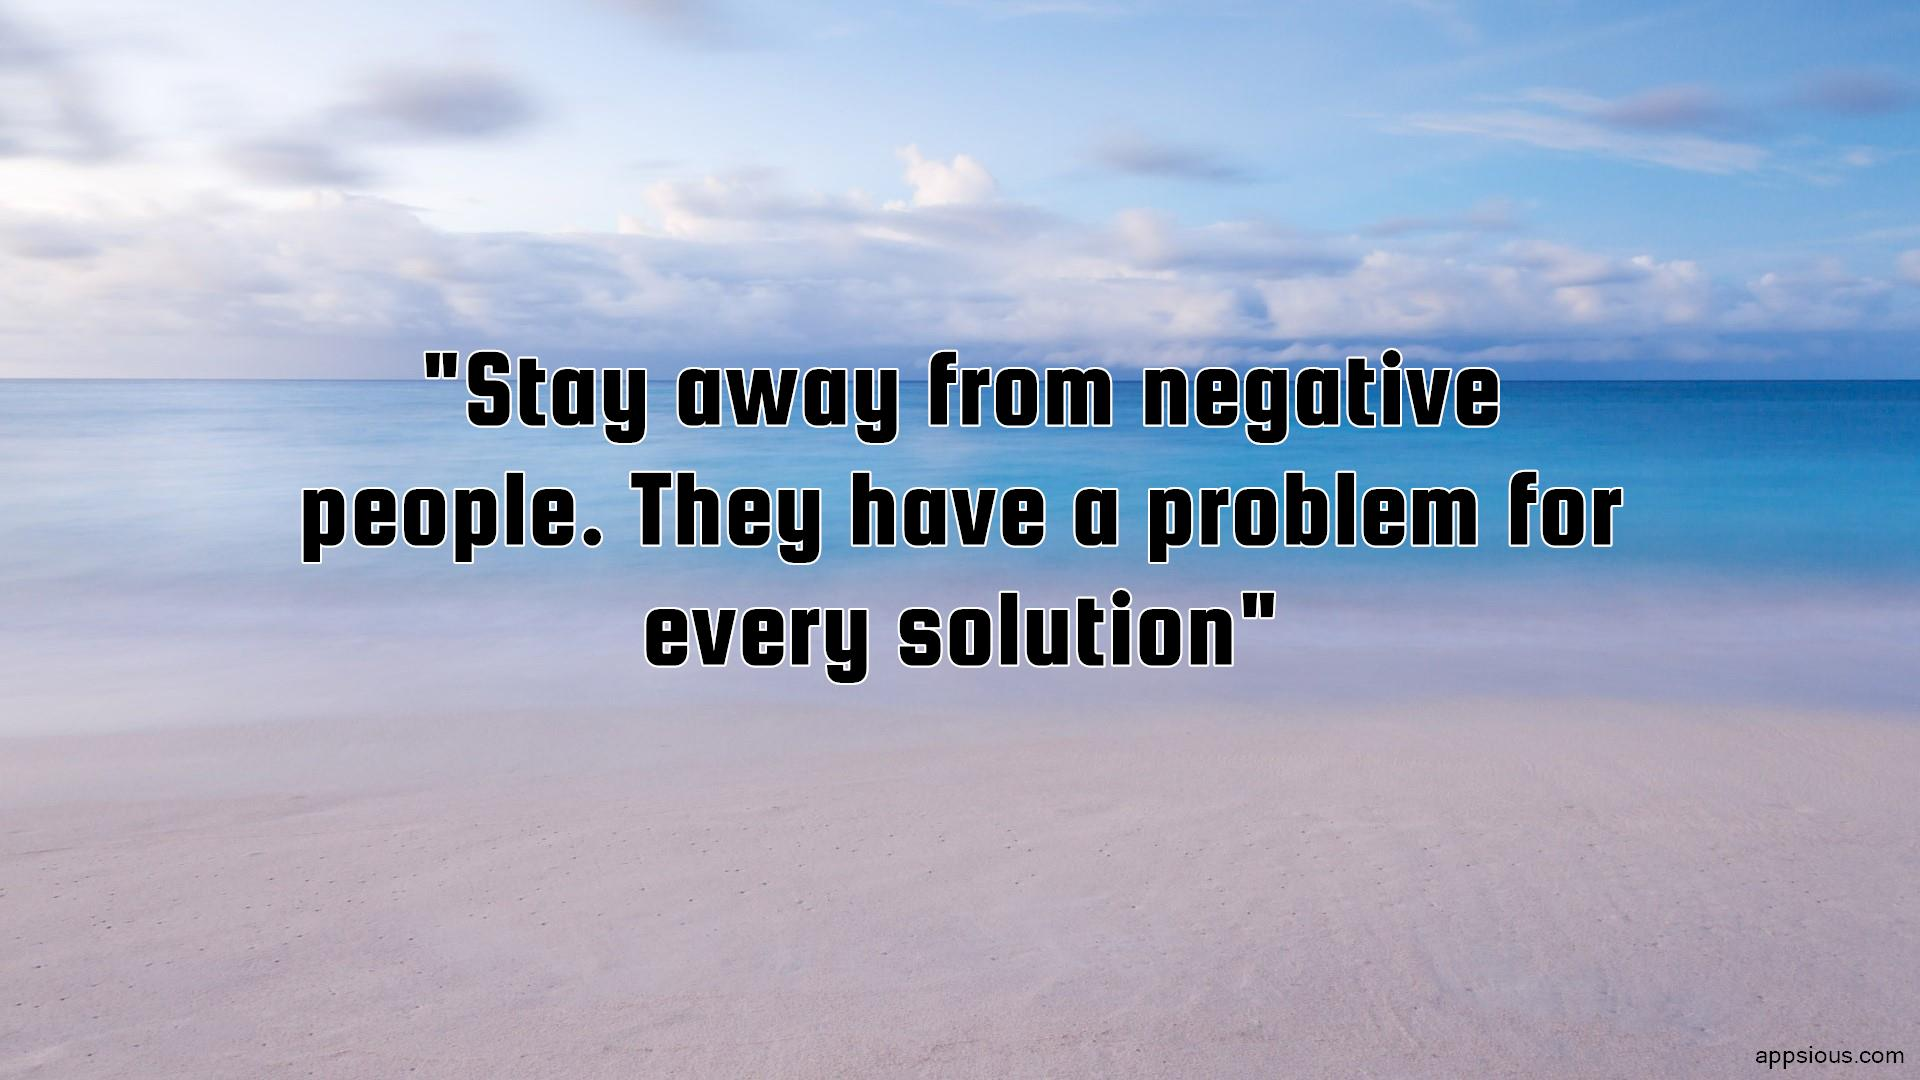 Stay away from negative people. They have a problem for every solution